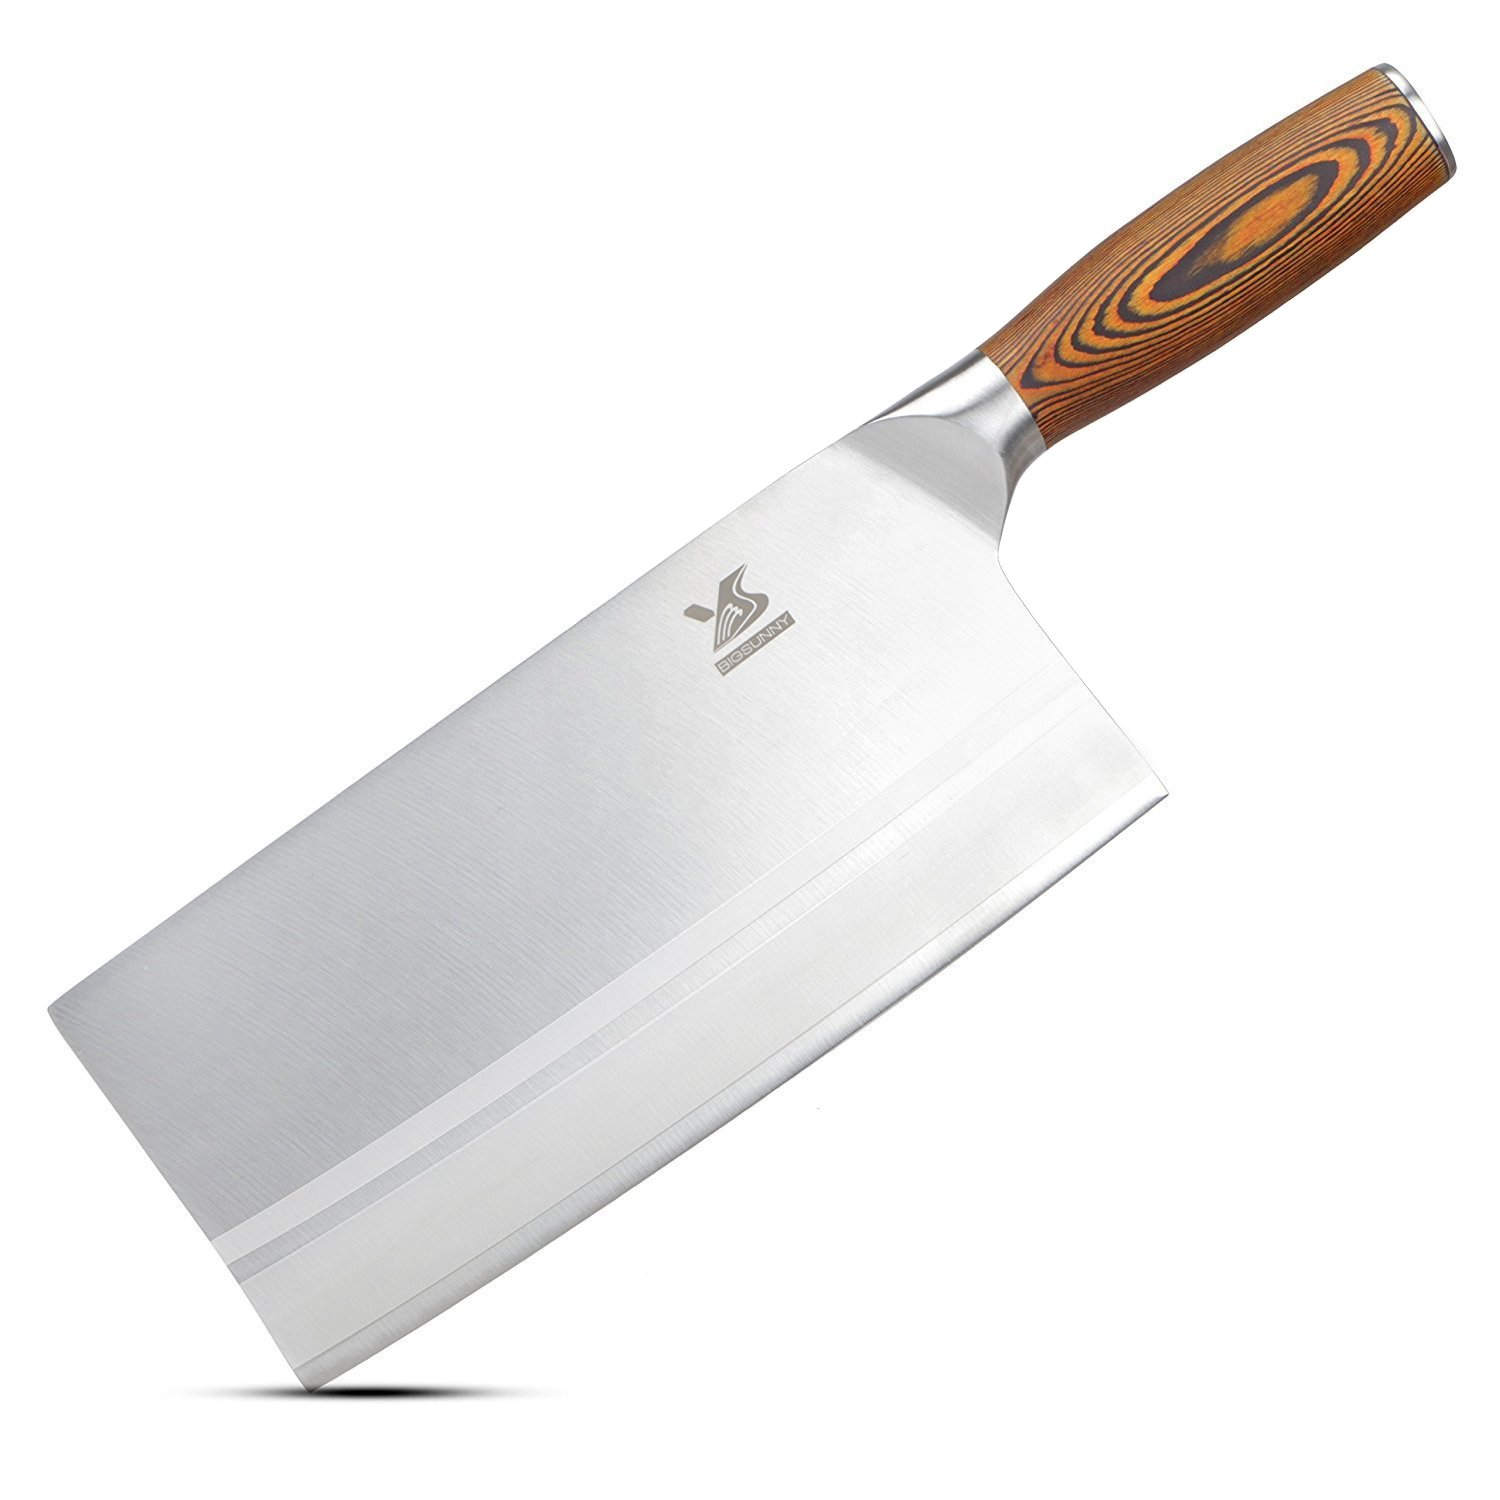 BIGSUNNY 8'' Chinese Kitchen Knife Meat Cleaver Vegetable Knife, Pakka Wood Handle